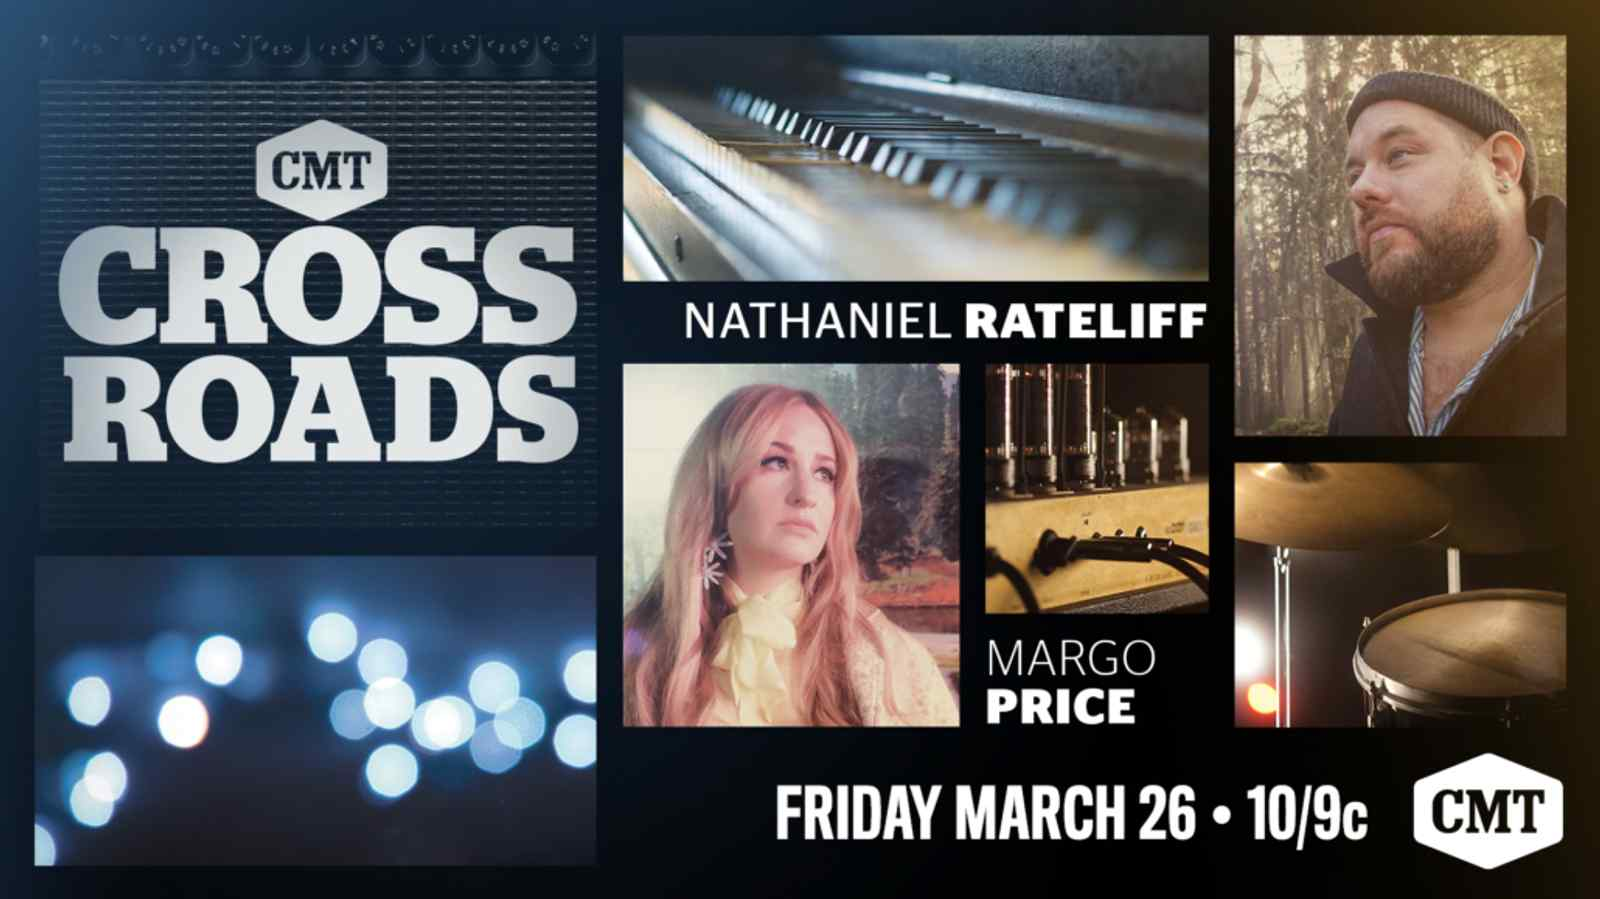 CMT Crossroads: Margo Price and Nathan Rateliff